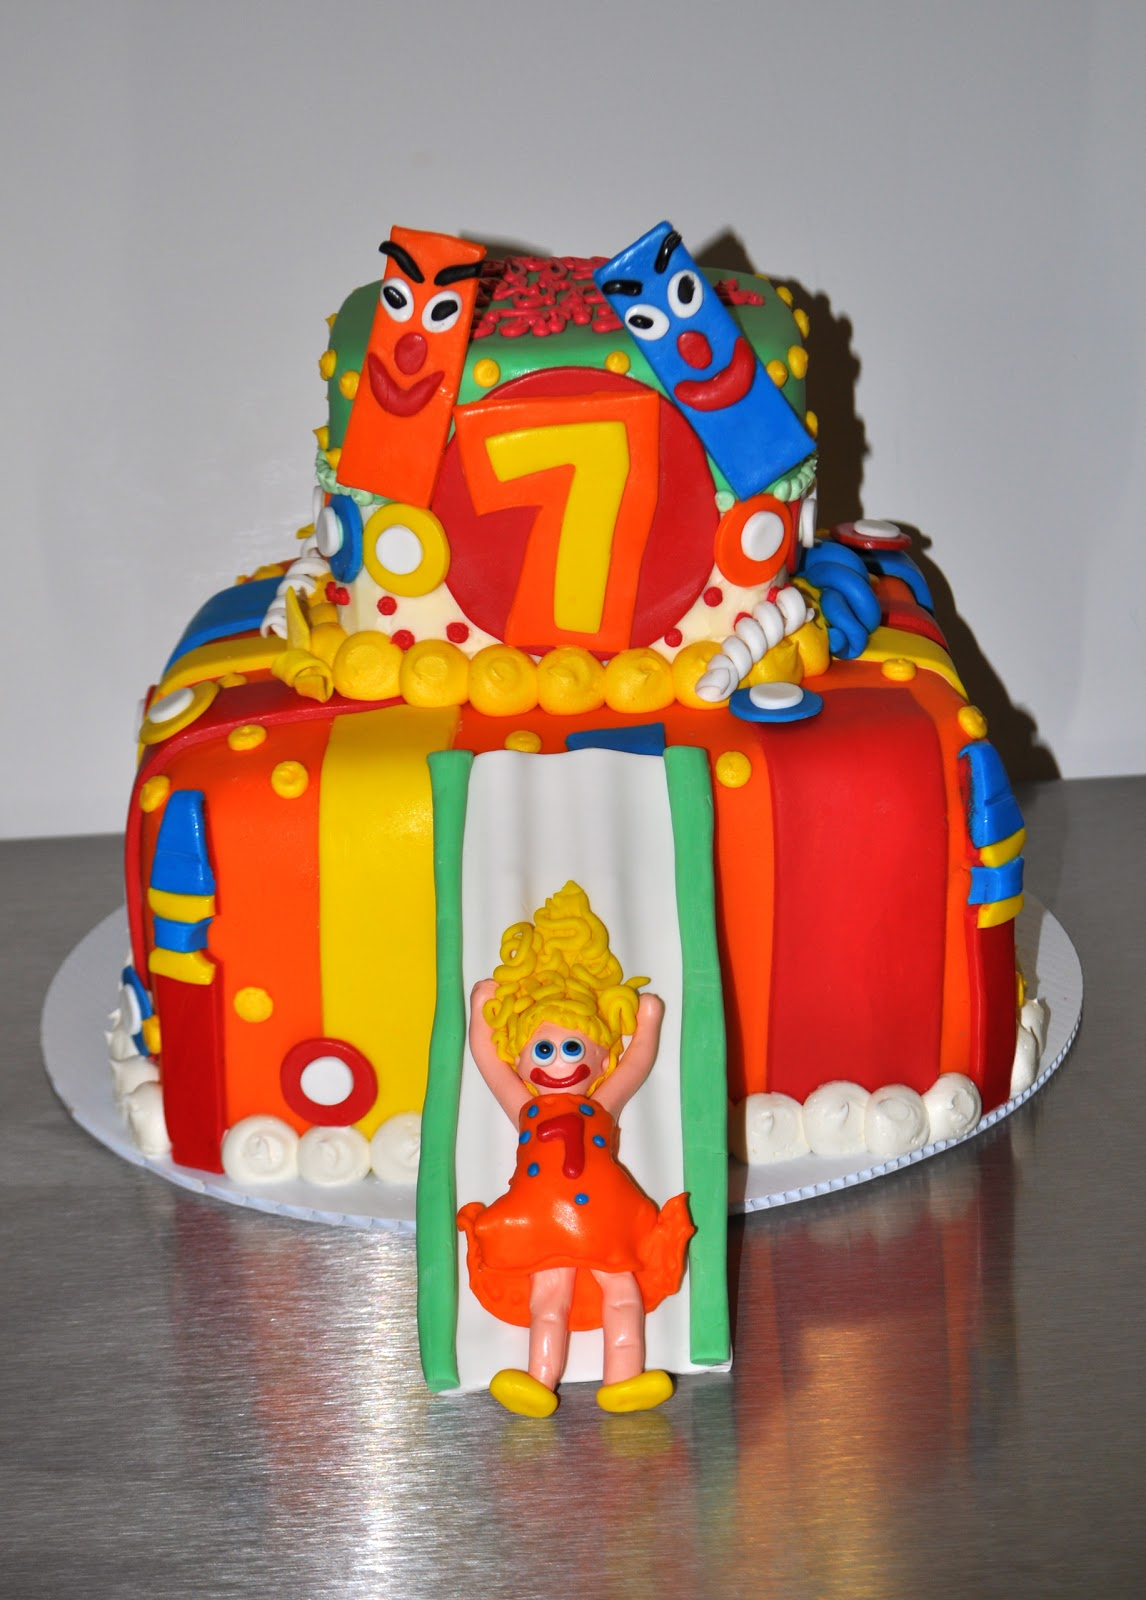 Coolest Cupcakes Bounce House Birthday Cake